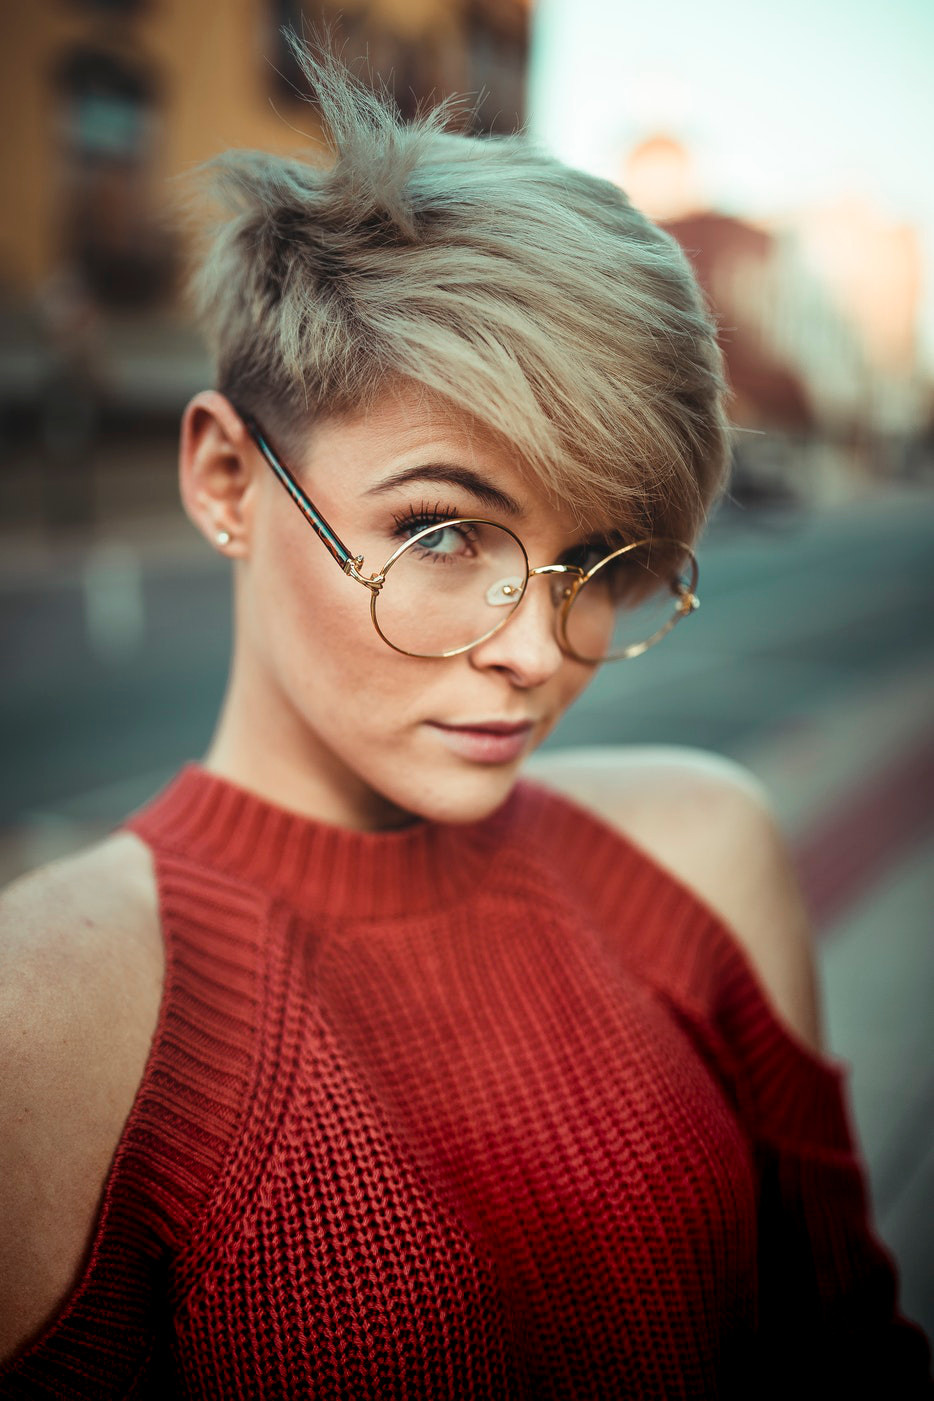 Round Glasses - Evergreen Trend That is Slowly Making a Comeback Femie Magazine